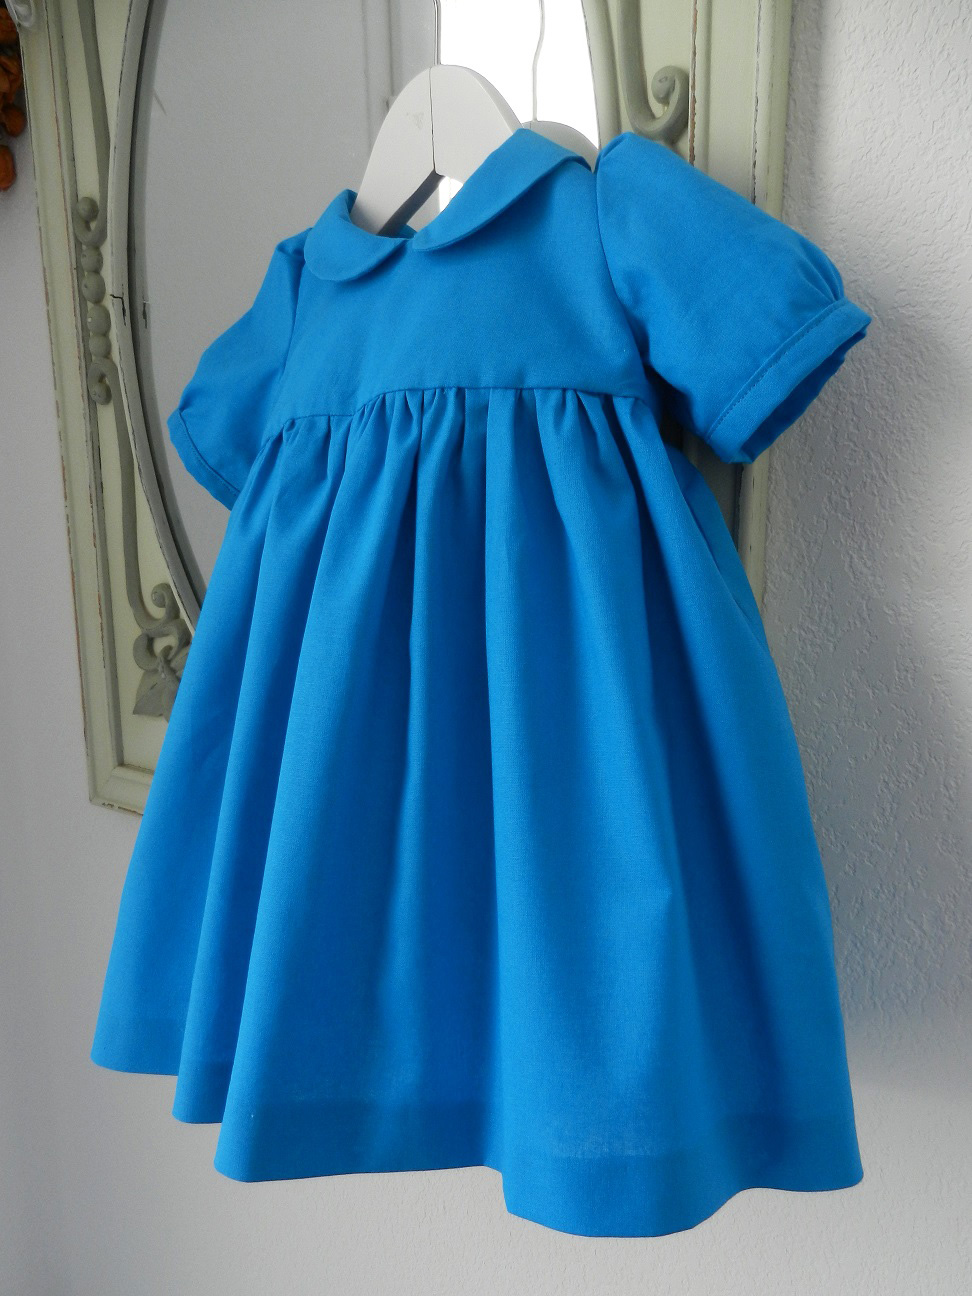 Duchesse or ange 190 robe bleue alice tablier blanc jupon blue dress white apron petticoat b